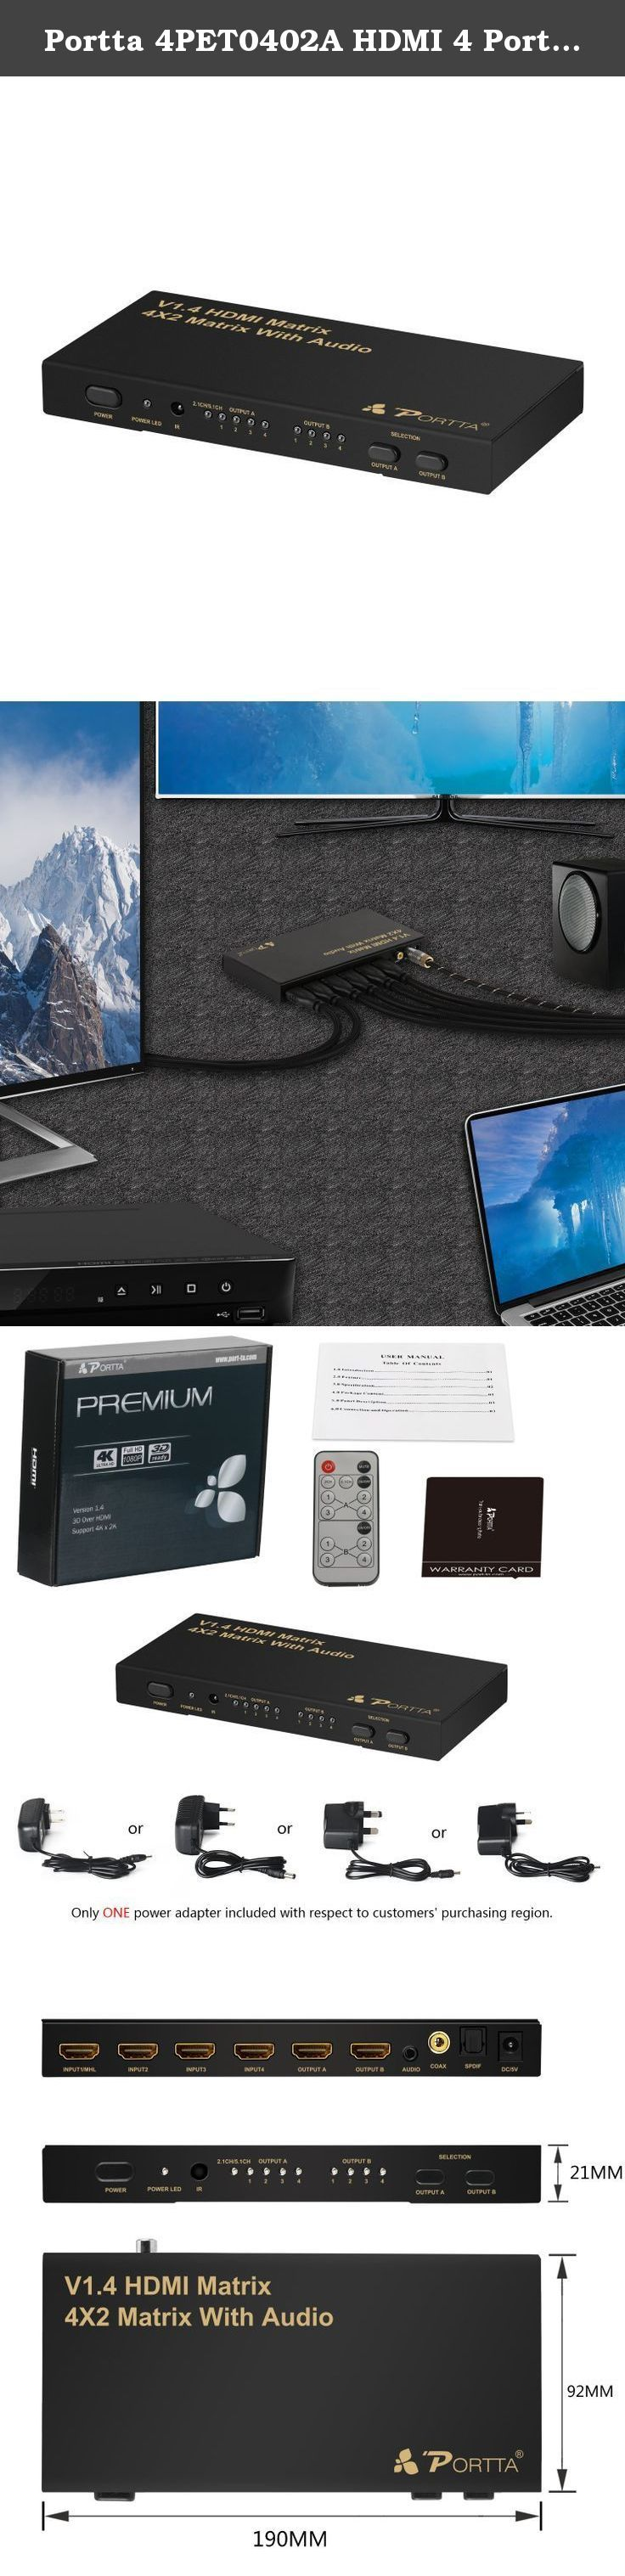 Portta 4PET0402A HDMI 4 Port 4x2 Matrix + audio output with Remote v1.4 support 3D Super Slim 4k. The 4kx2k HDMI Matrix Switch lets you share up to 4 distinct HDMI or DVI inputs (using HDMI to DVI adapters - not included), with audio, between 2 independent displays or projectors. This matrix switch allows each input and the corresponding audio to be switched individually, meaning that different two A/V sources can be shown on each output, or a single source can be output to two, offering...